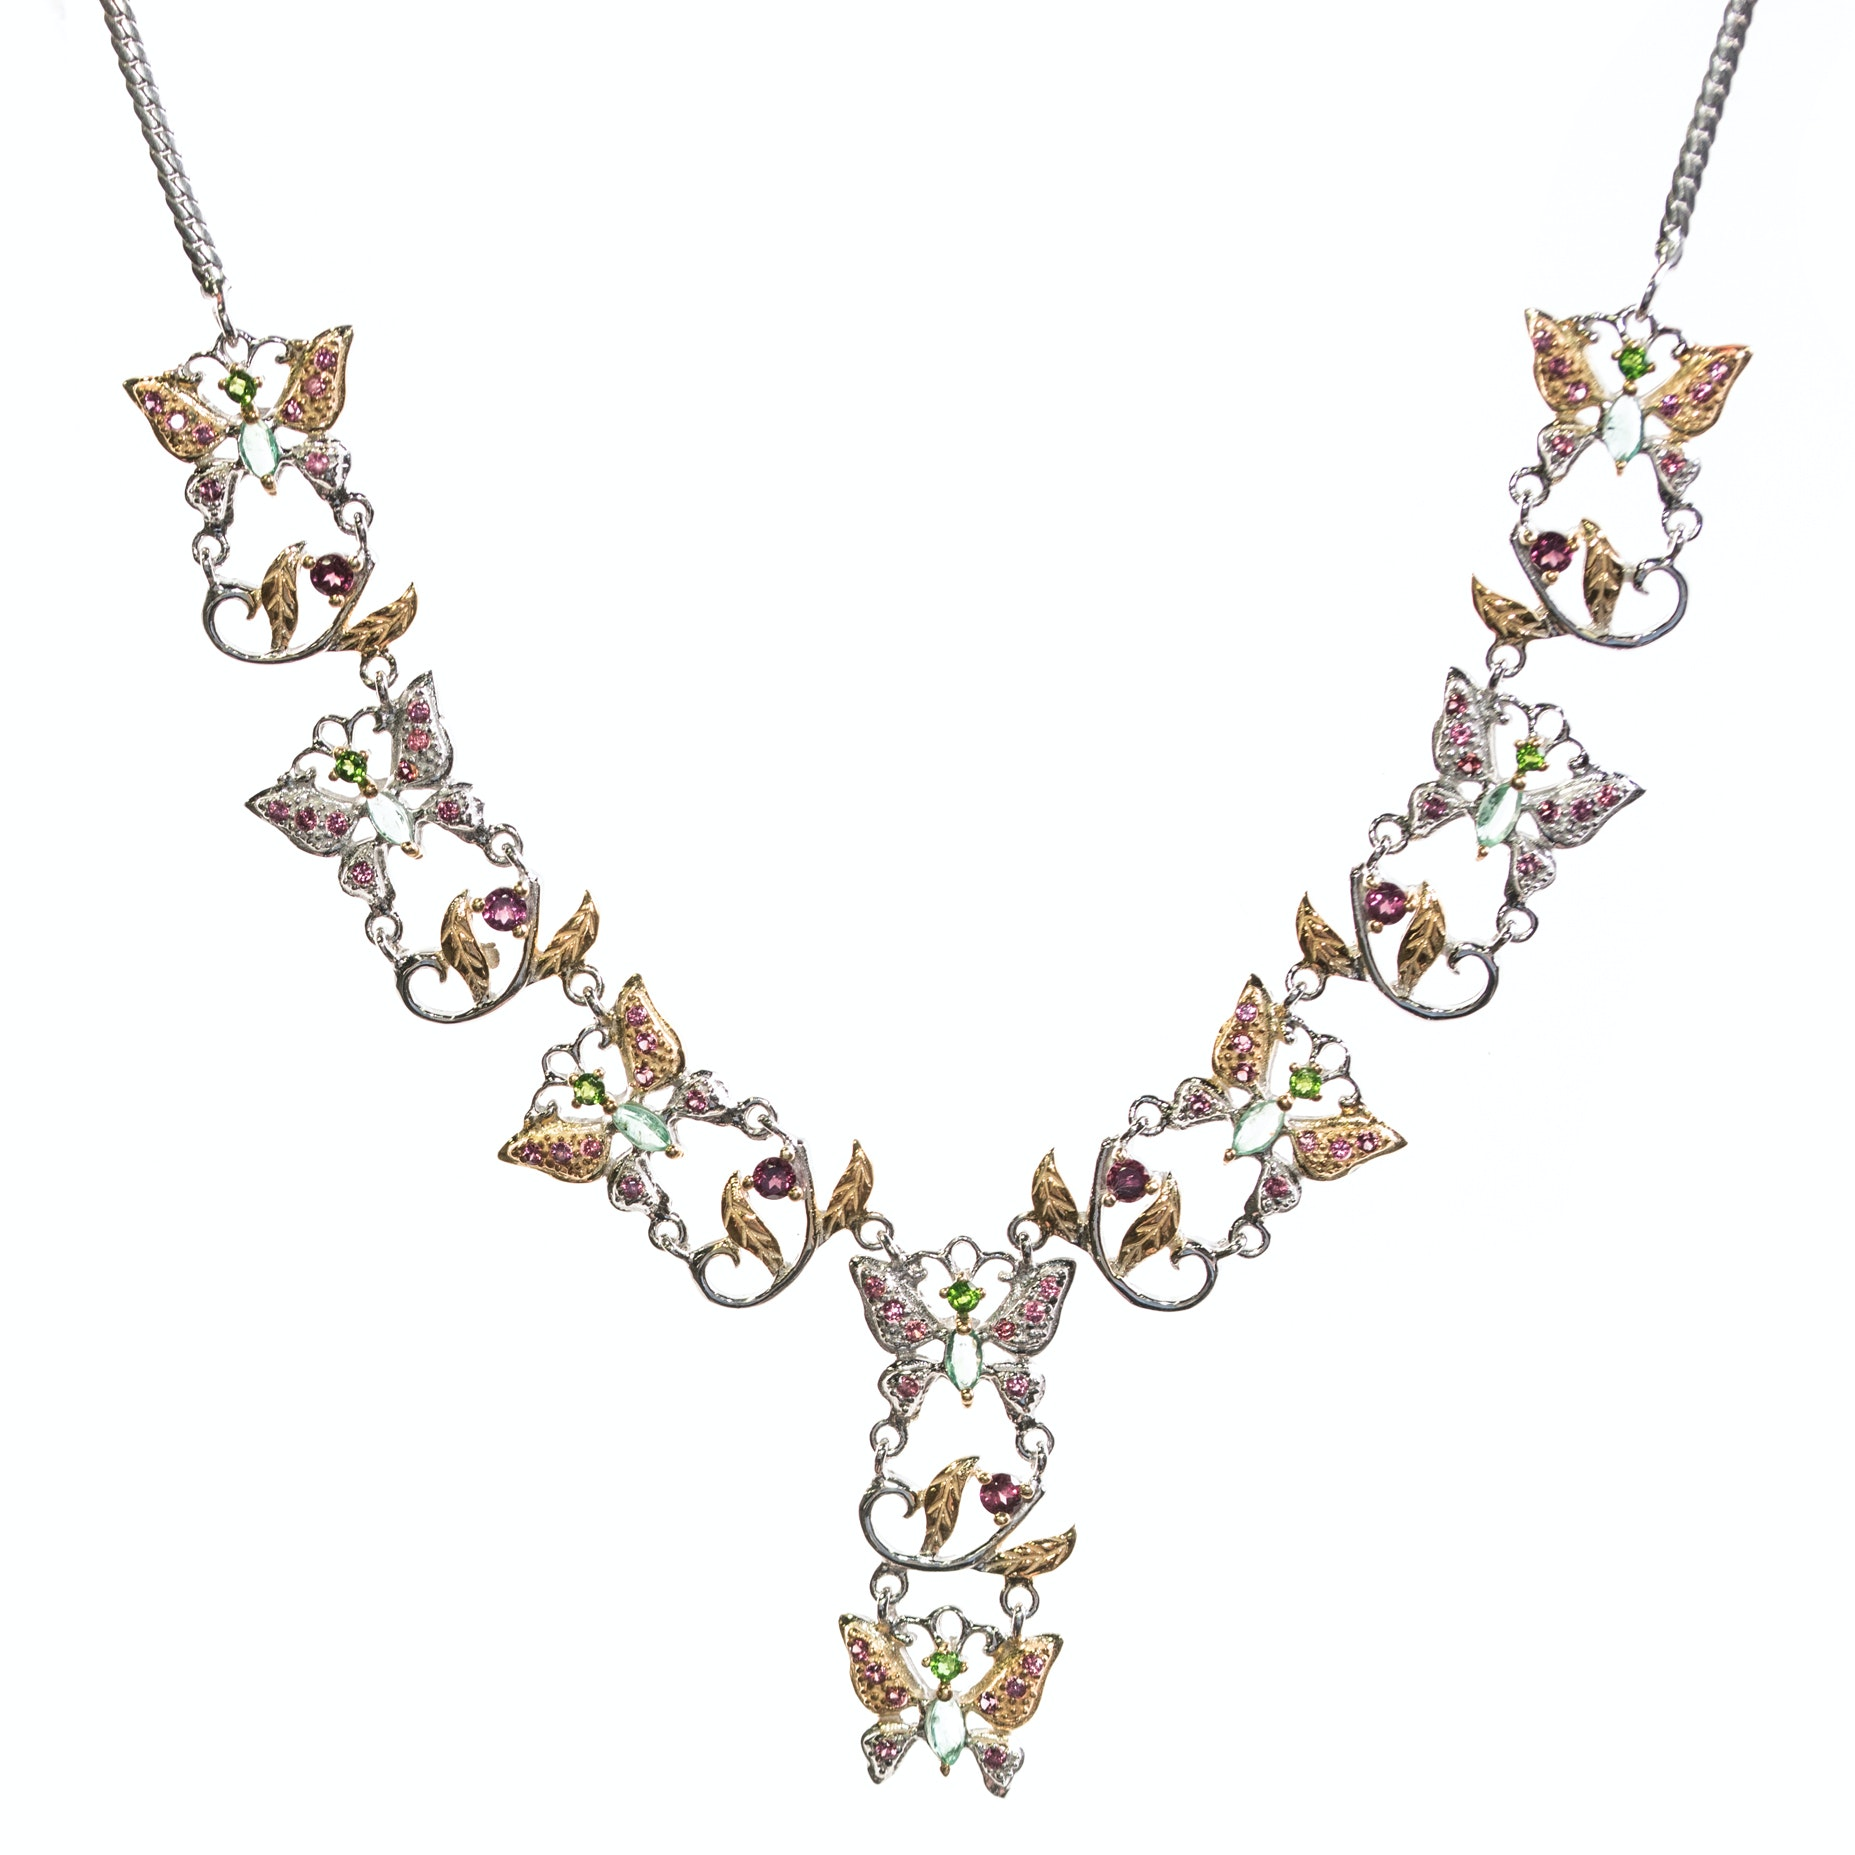 Sterling Silver, Emerald, 3.56 CTW Garnet, and Chrome Diopside Station Necklace